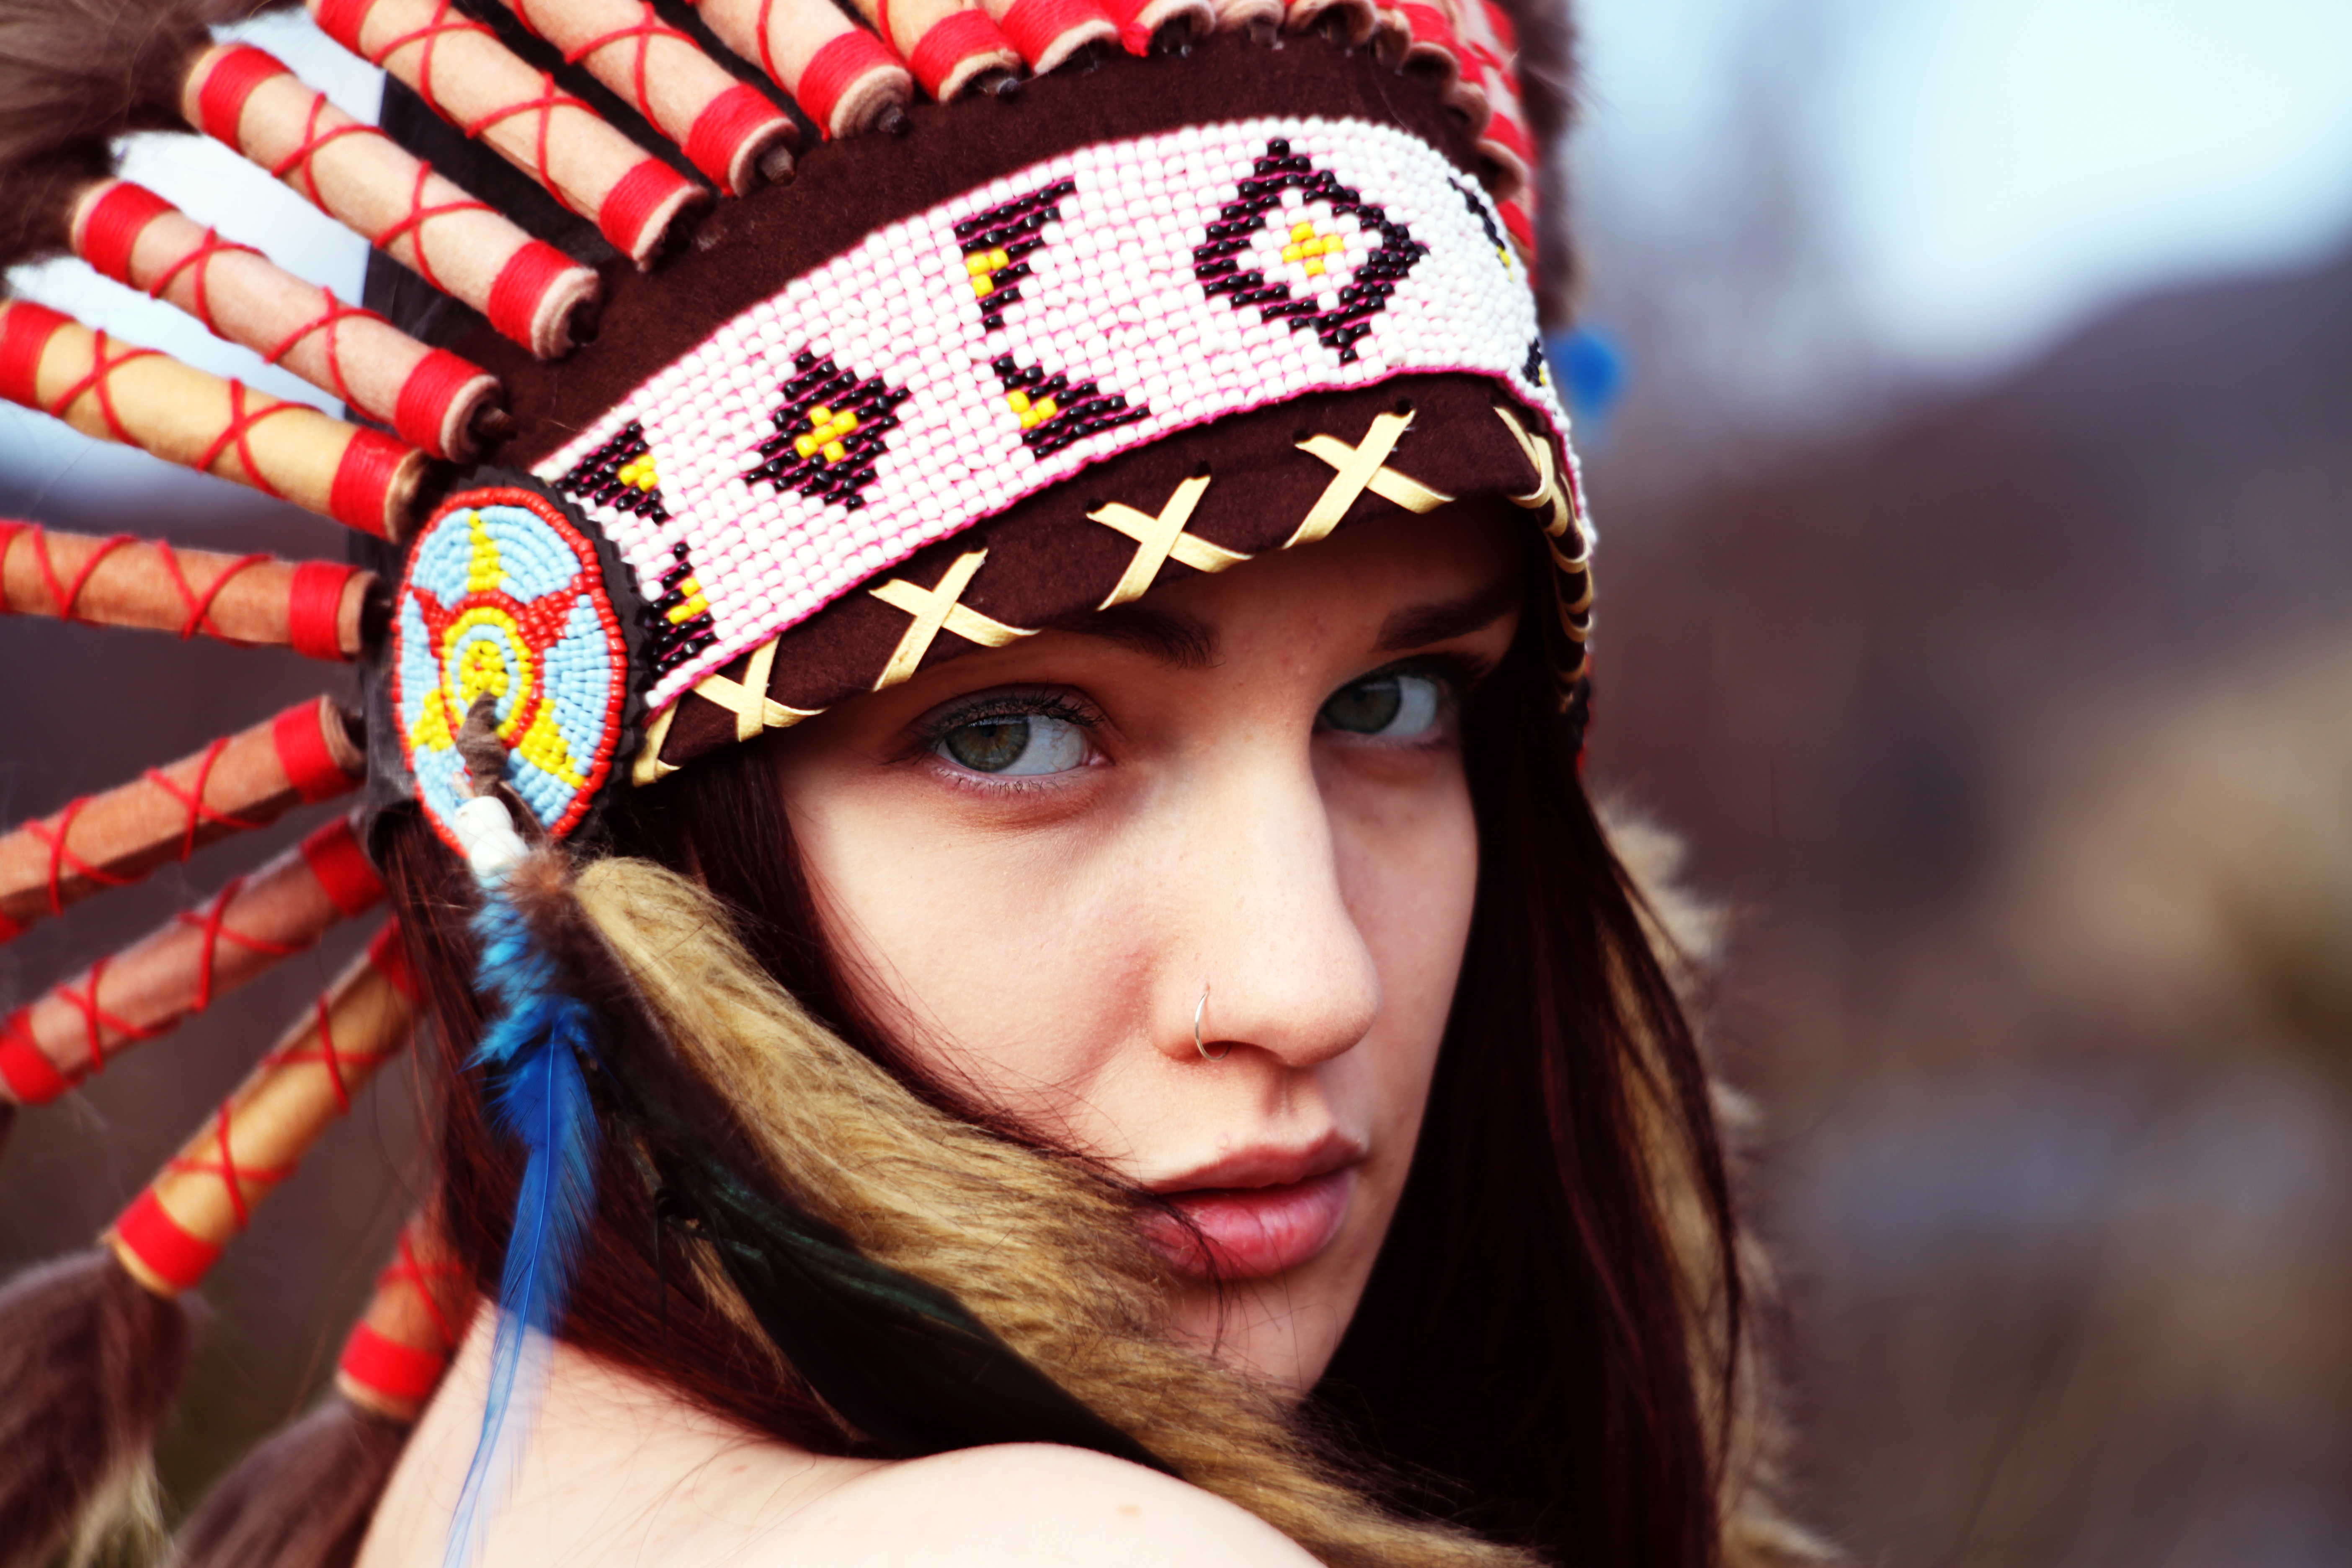 Poll of native americans view of redskins name finds proud most common answer